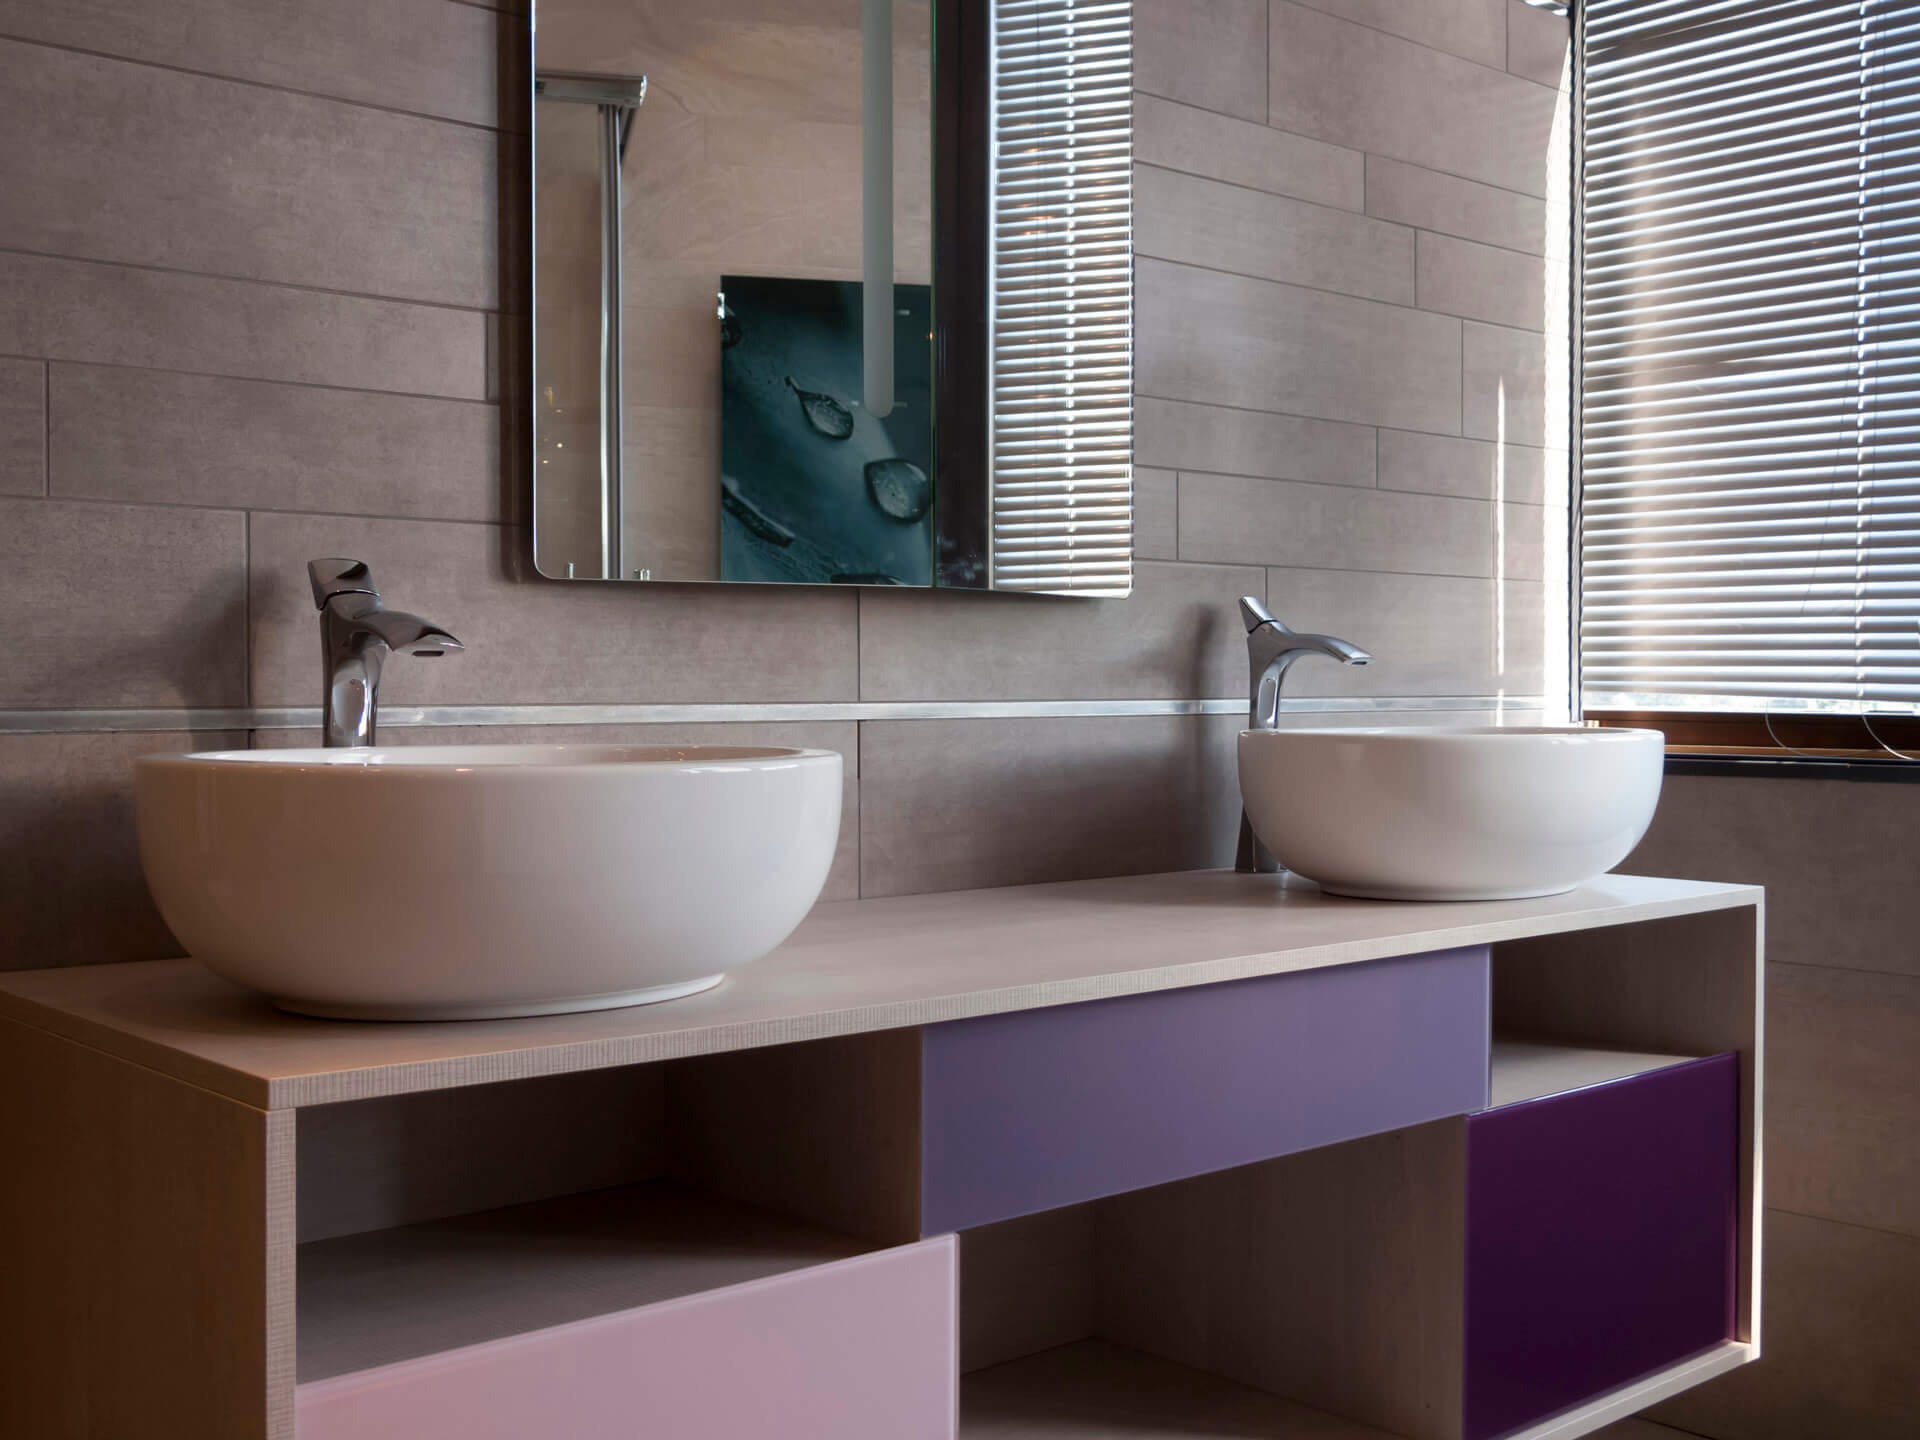 Contemporary bathroom design with two bowl wash hand basins on top of floating storage unit with a selection of open and closed storage units in accent colours.